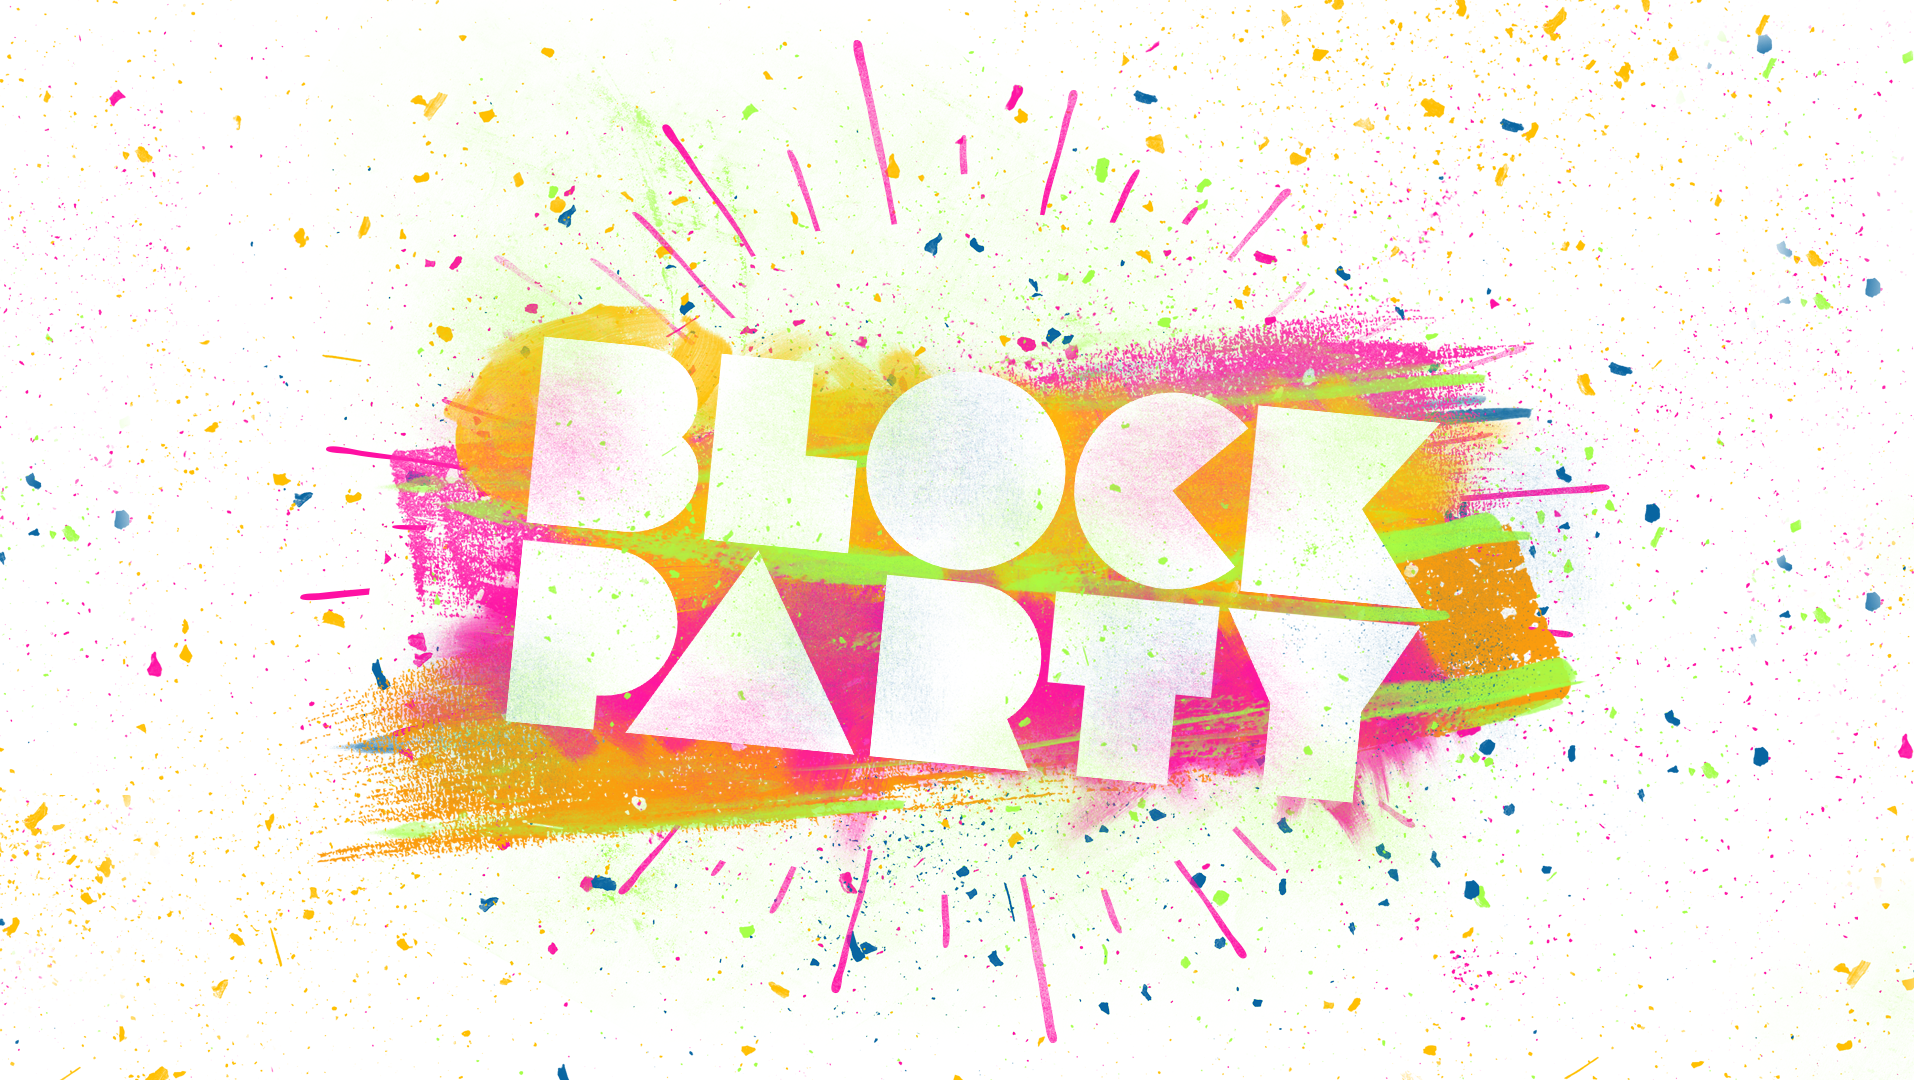 block_party-PSD image